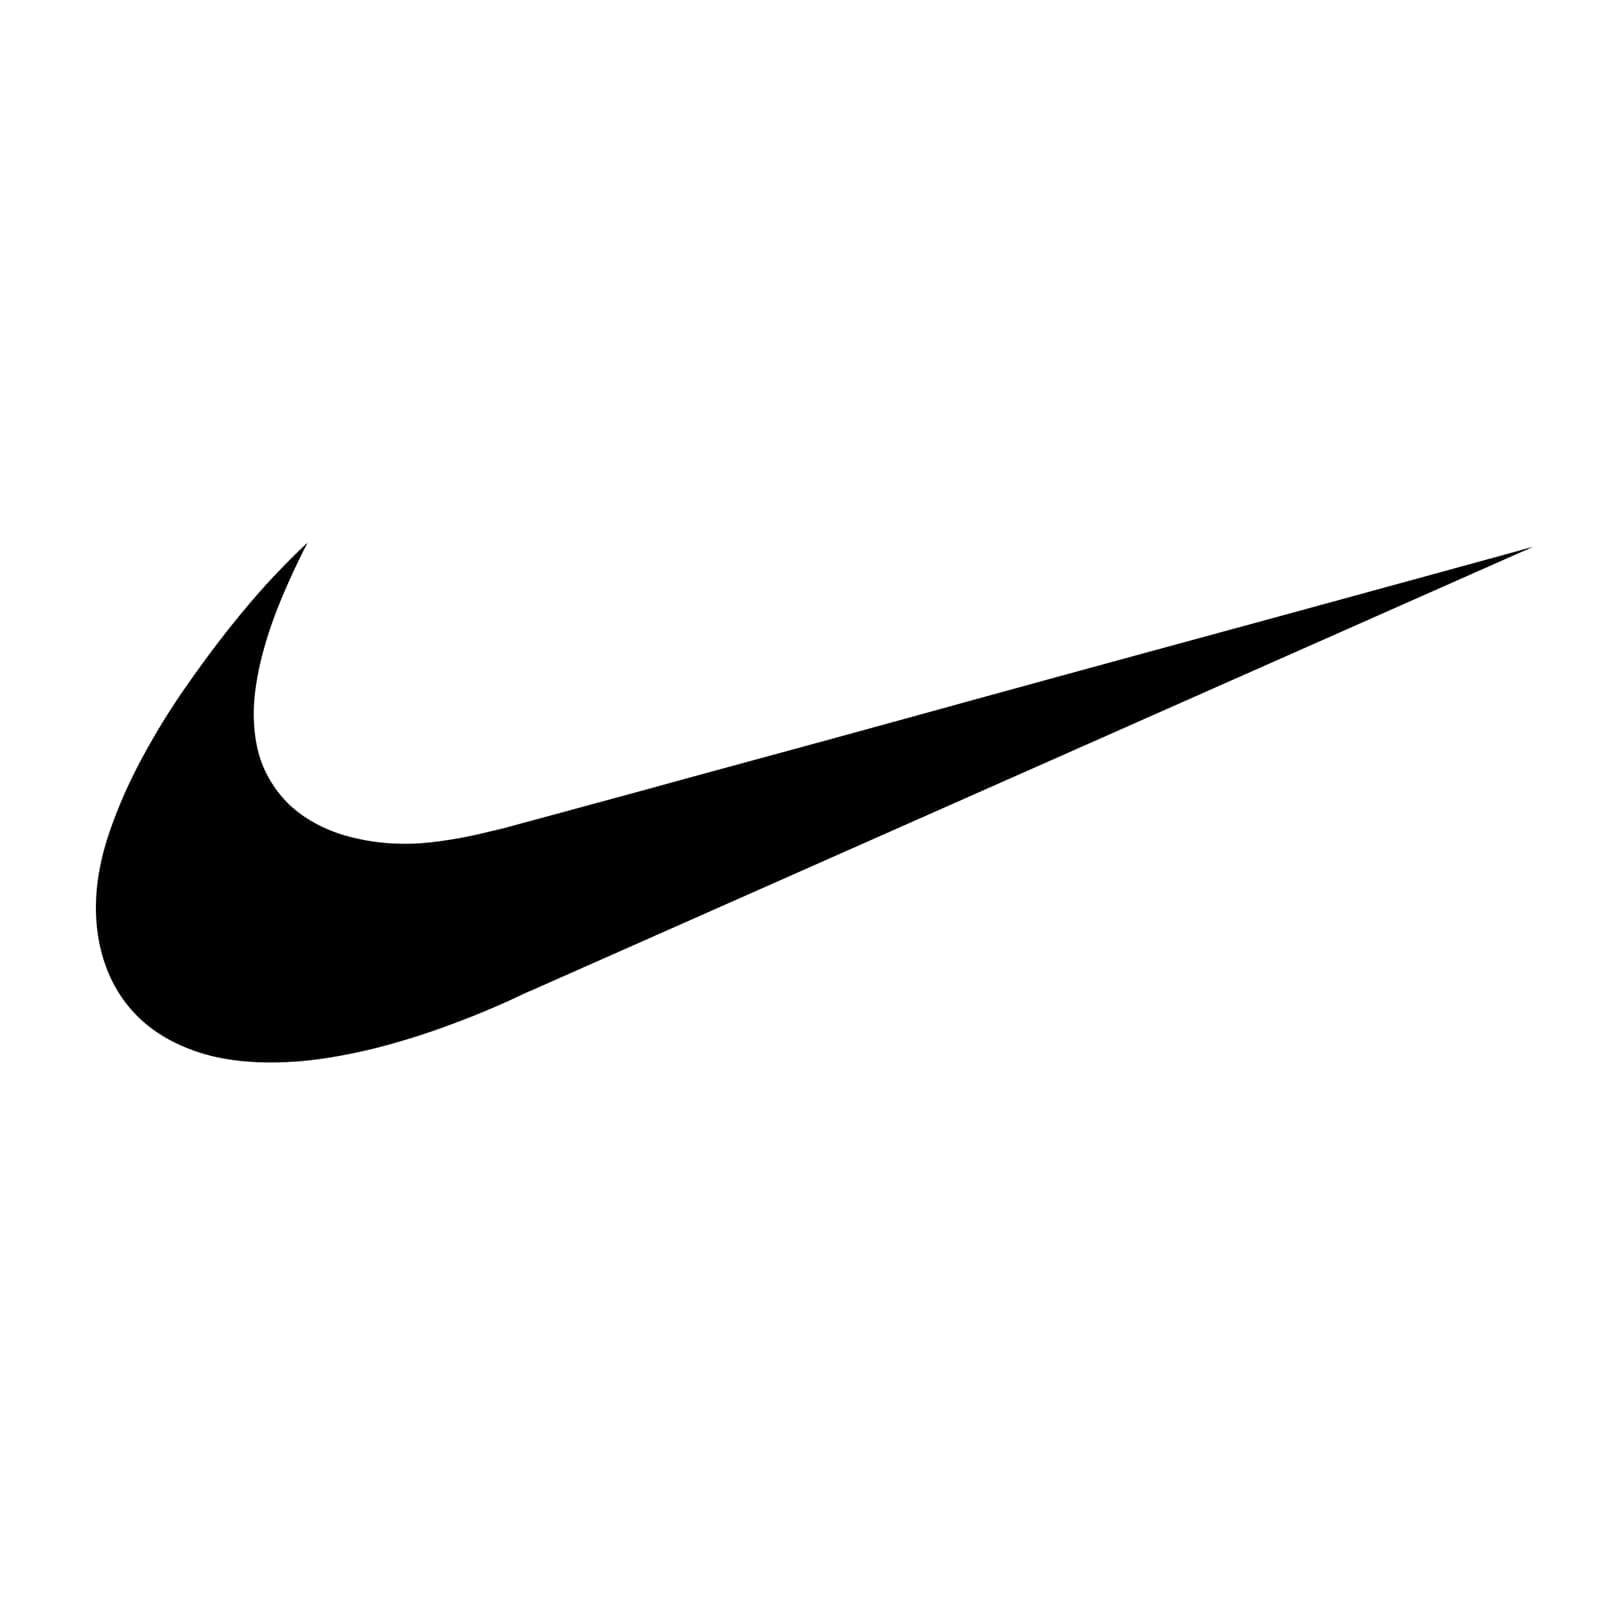 Nike Store Coupon for Additional Savings on Clearance Items 20% Off + Free Shipping w/ Nike+ Acct.